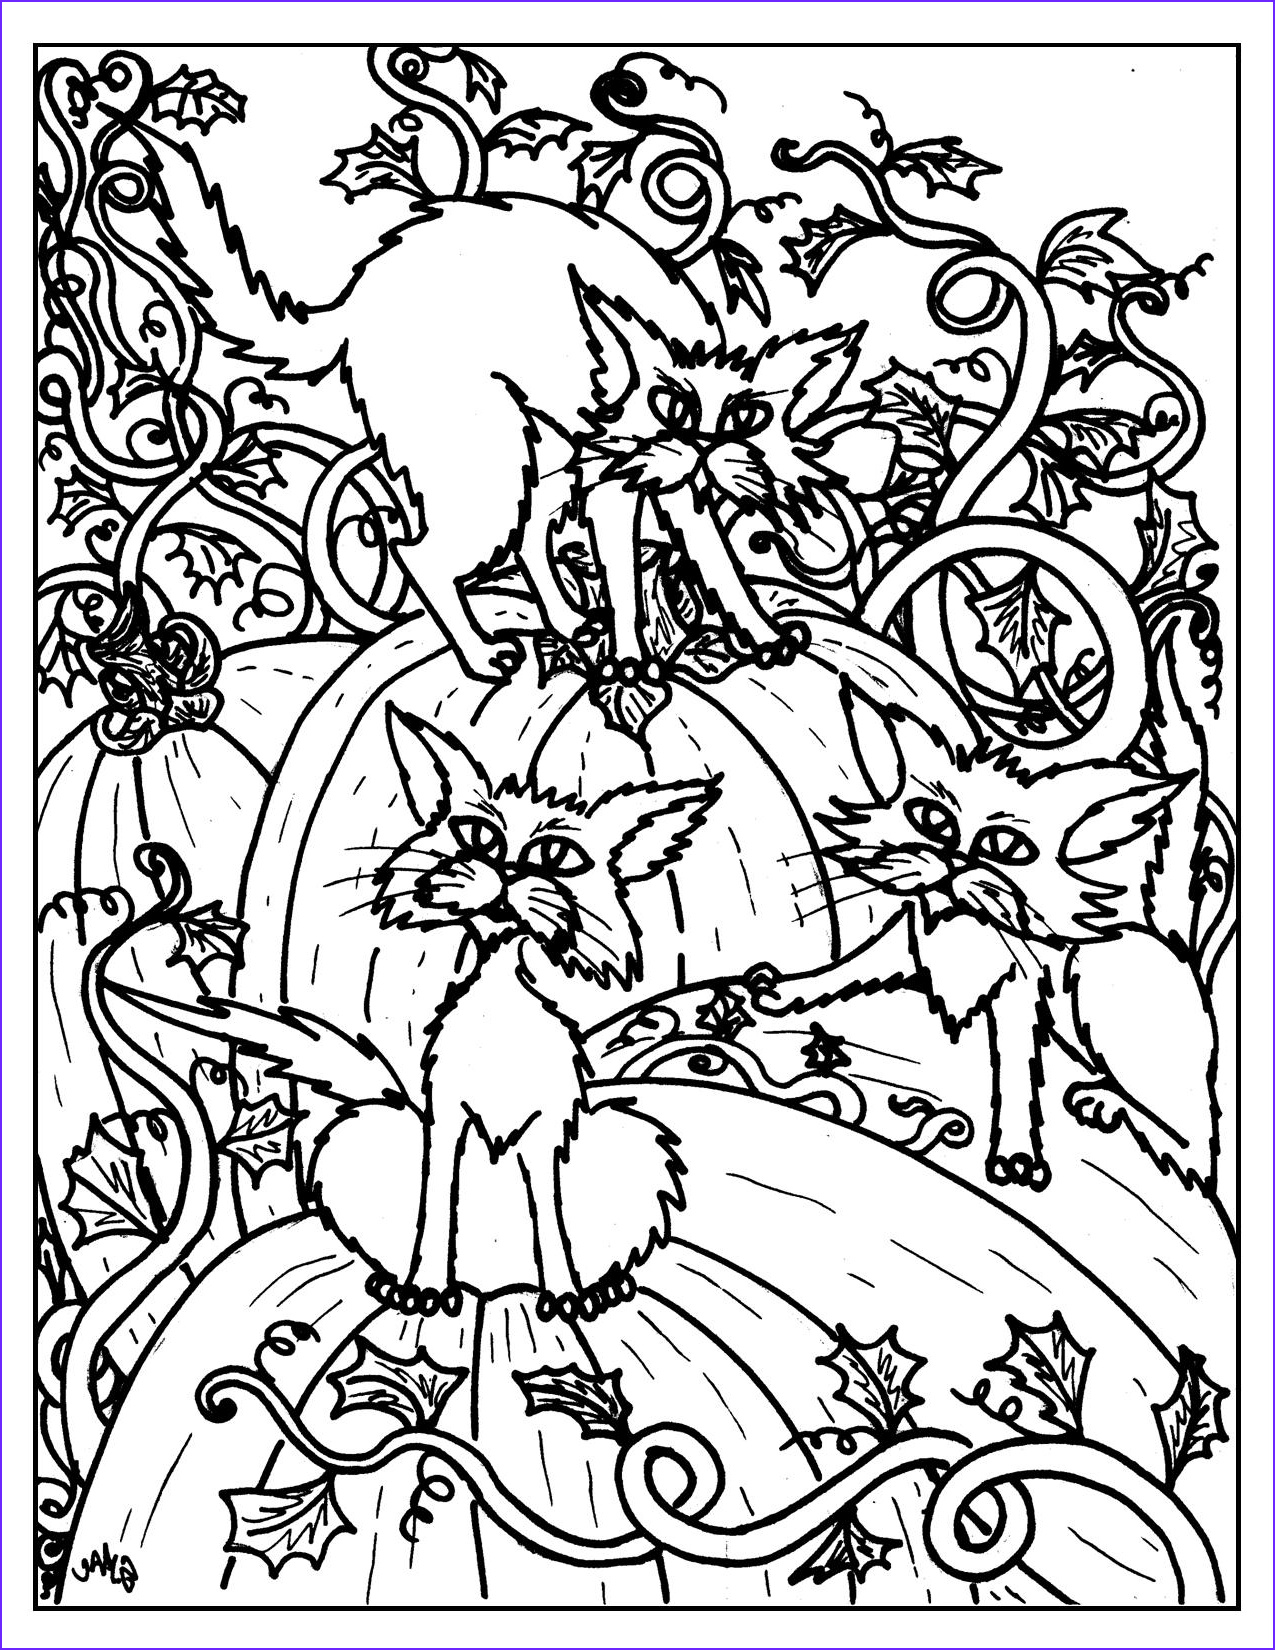 Halloween Adult Coloring Page Best Of Gallery Halloween Coloring Pages – S Mac S Place to Be